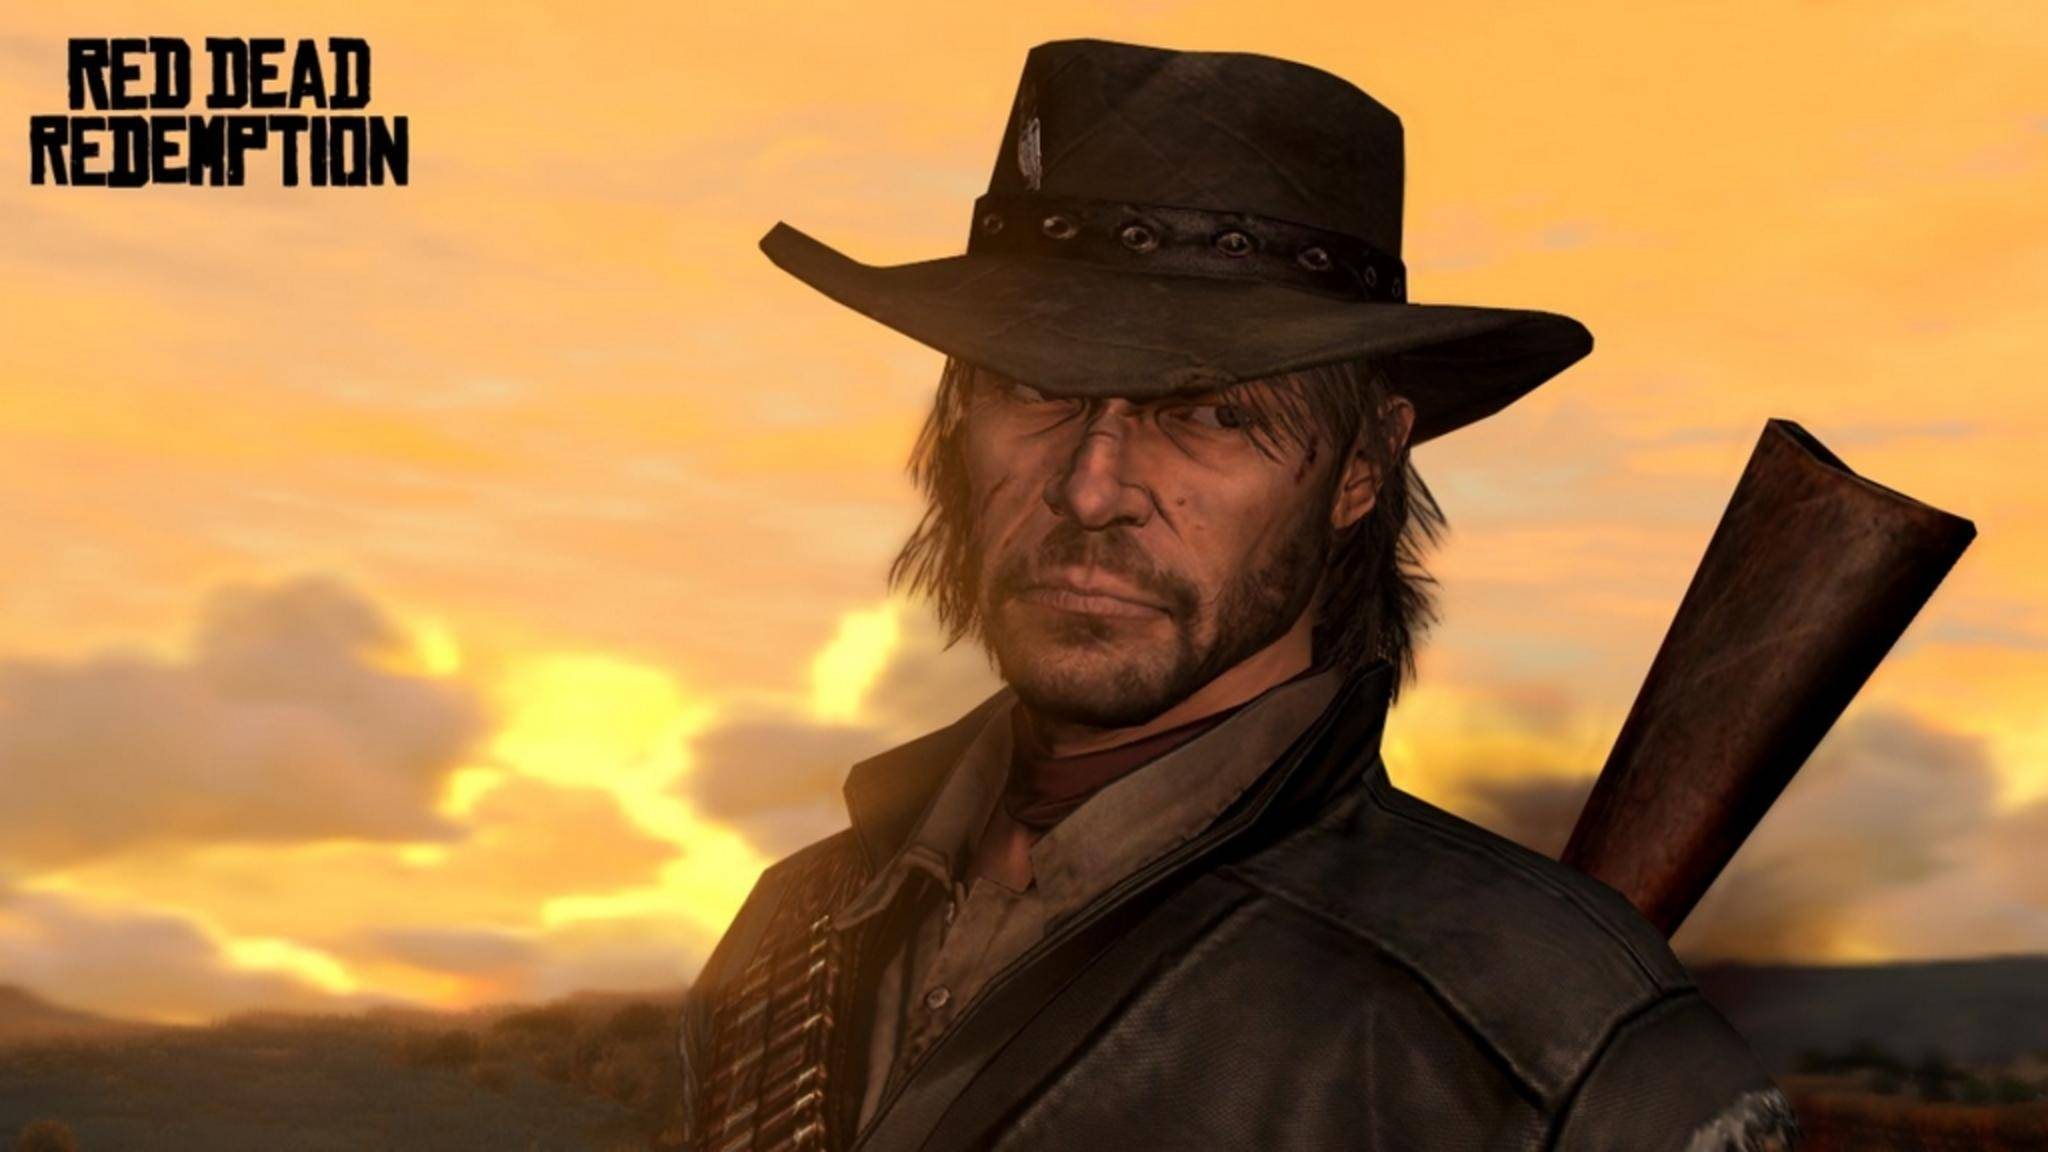 Red-Dead-Redemption-09